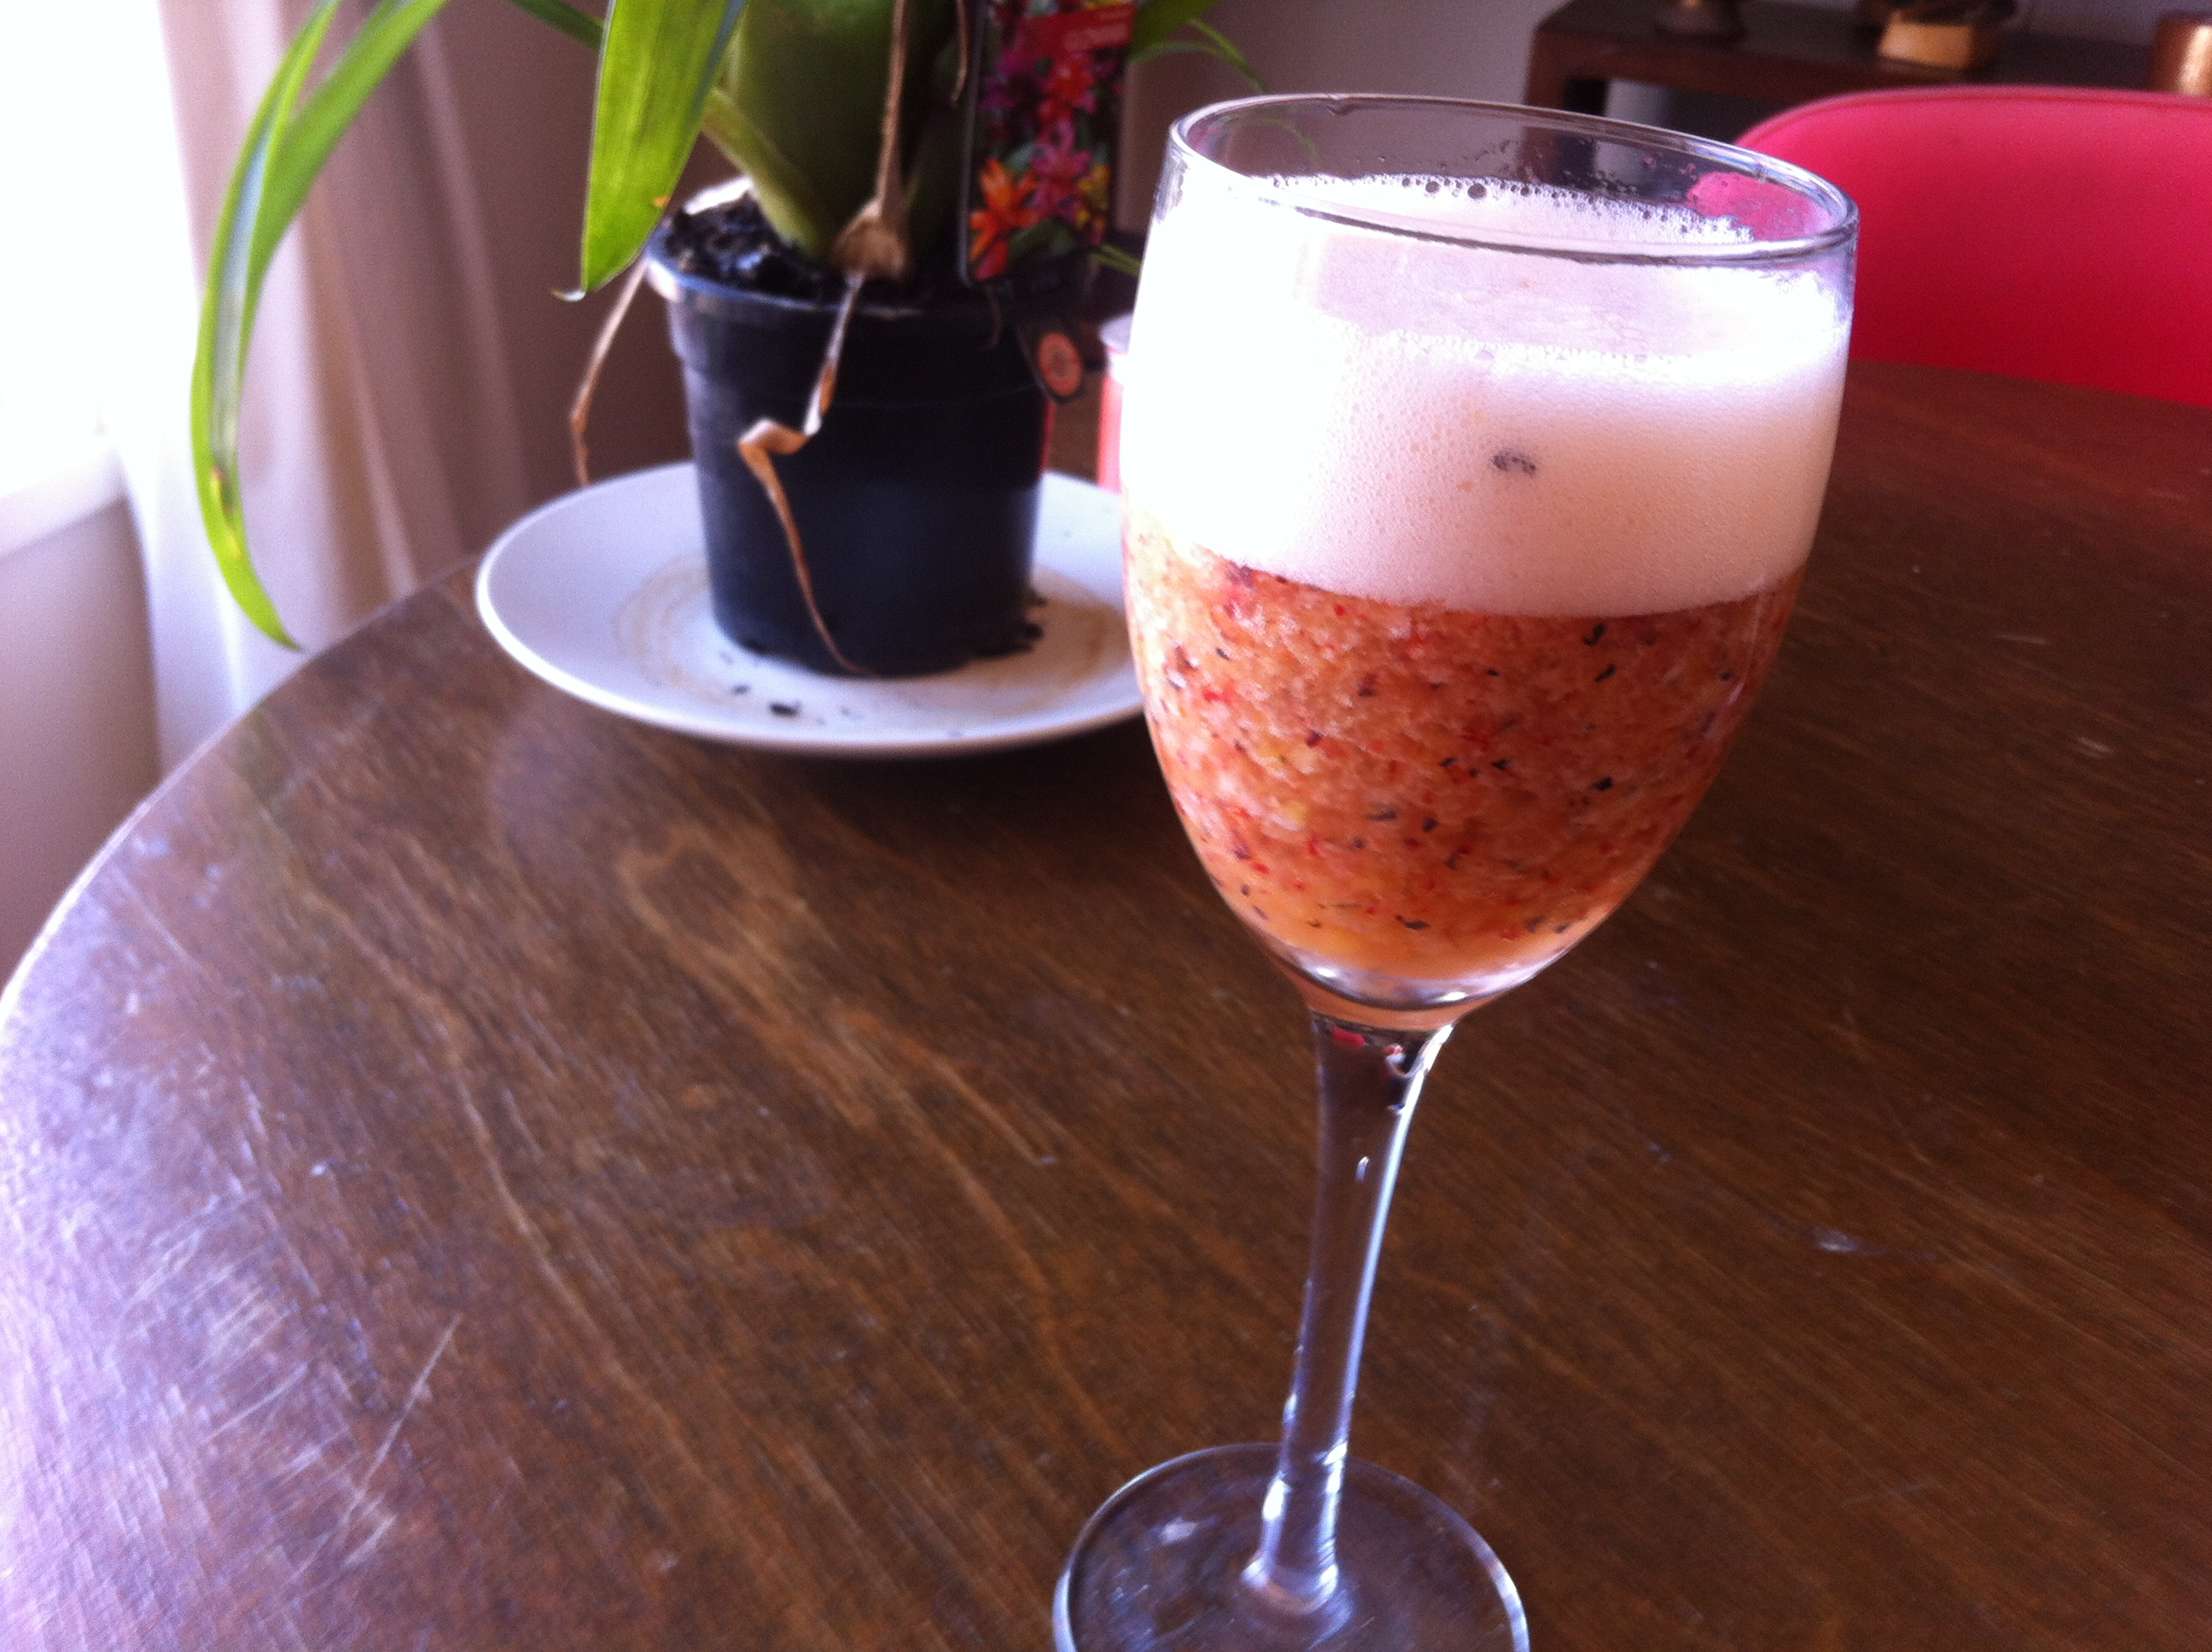 wine glass with cocktail in can see fruit with plant in background